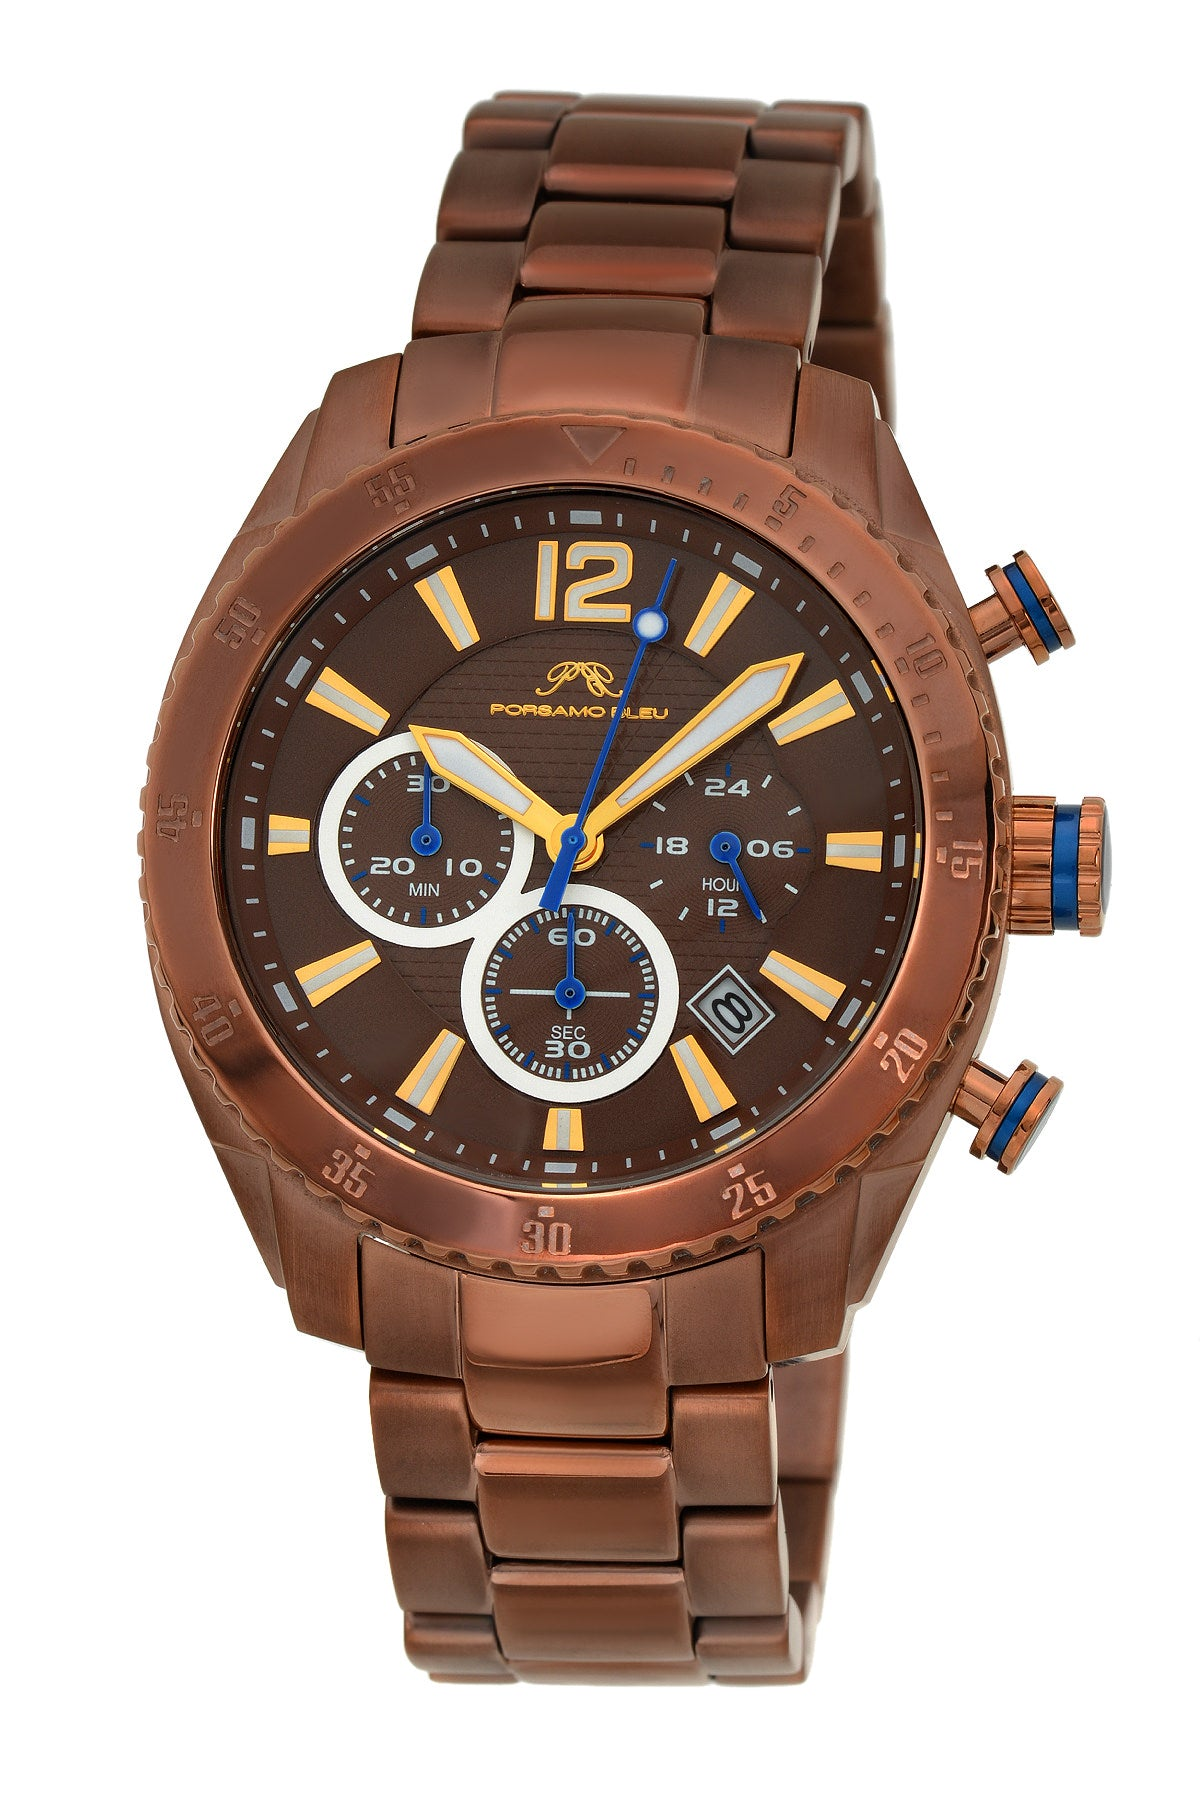 Porsamo Bleu Taylor luxury chronograph men's stainless steel watch, brown 621ETAS